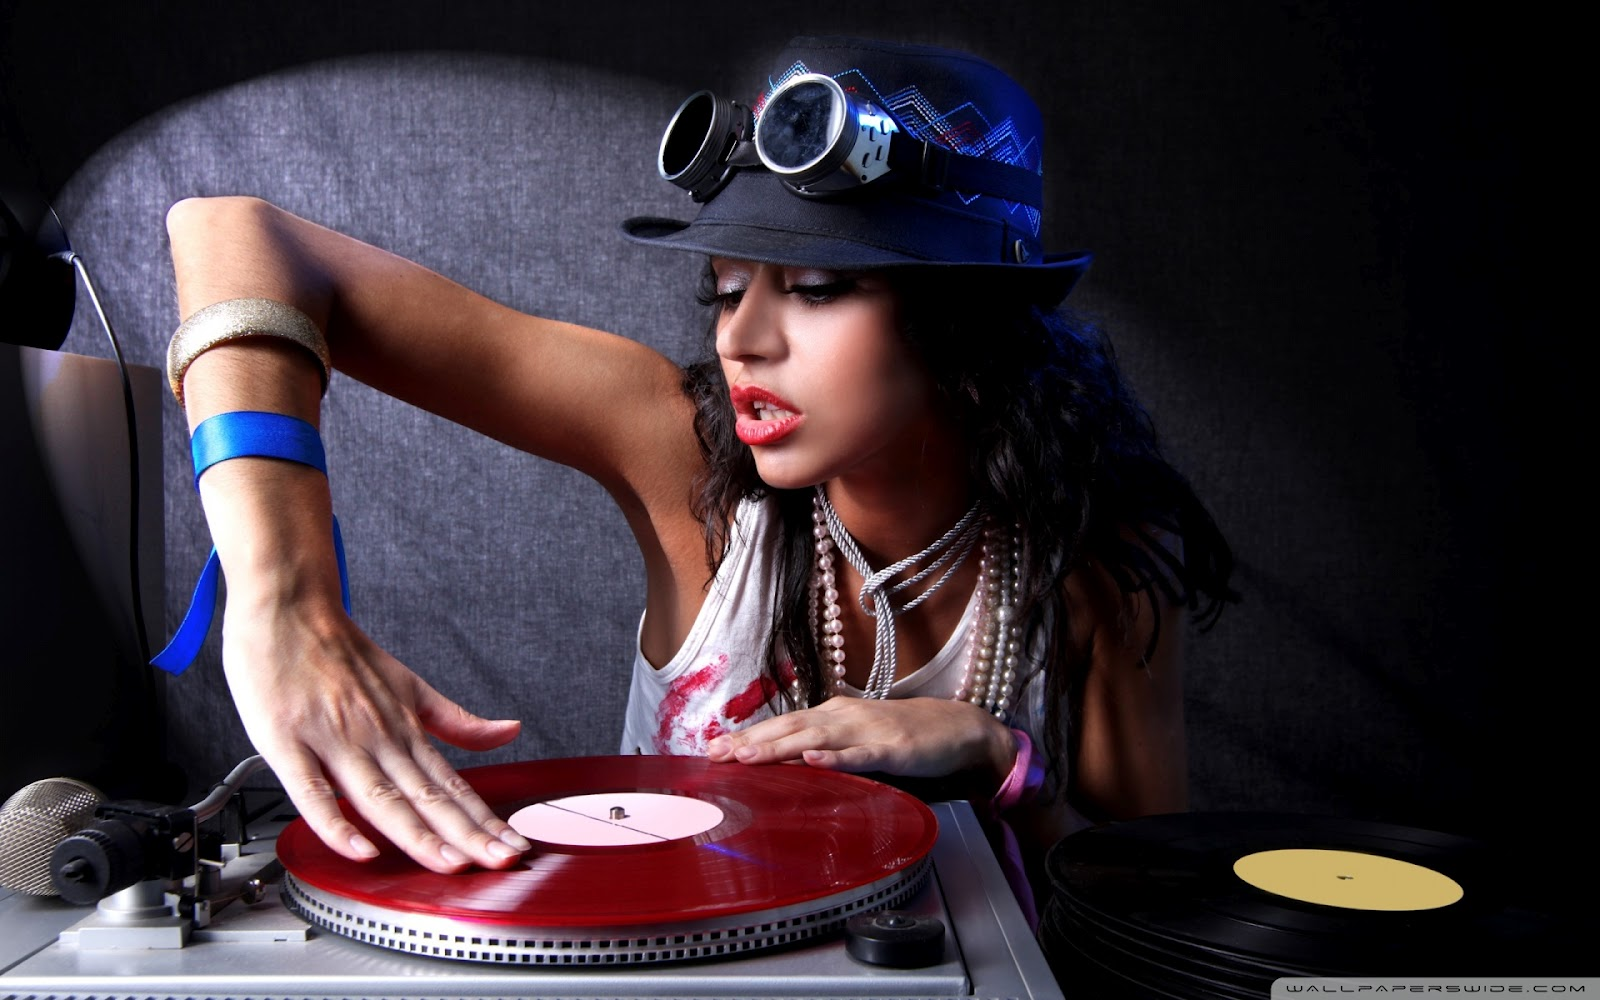 Dj Punjabi Girl Wallpaper Wallpapers Images Picpile Rising The Music Wallpapers